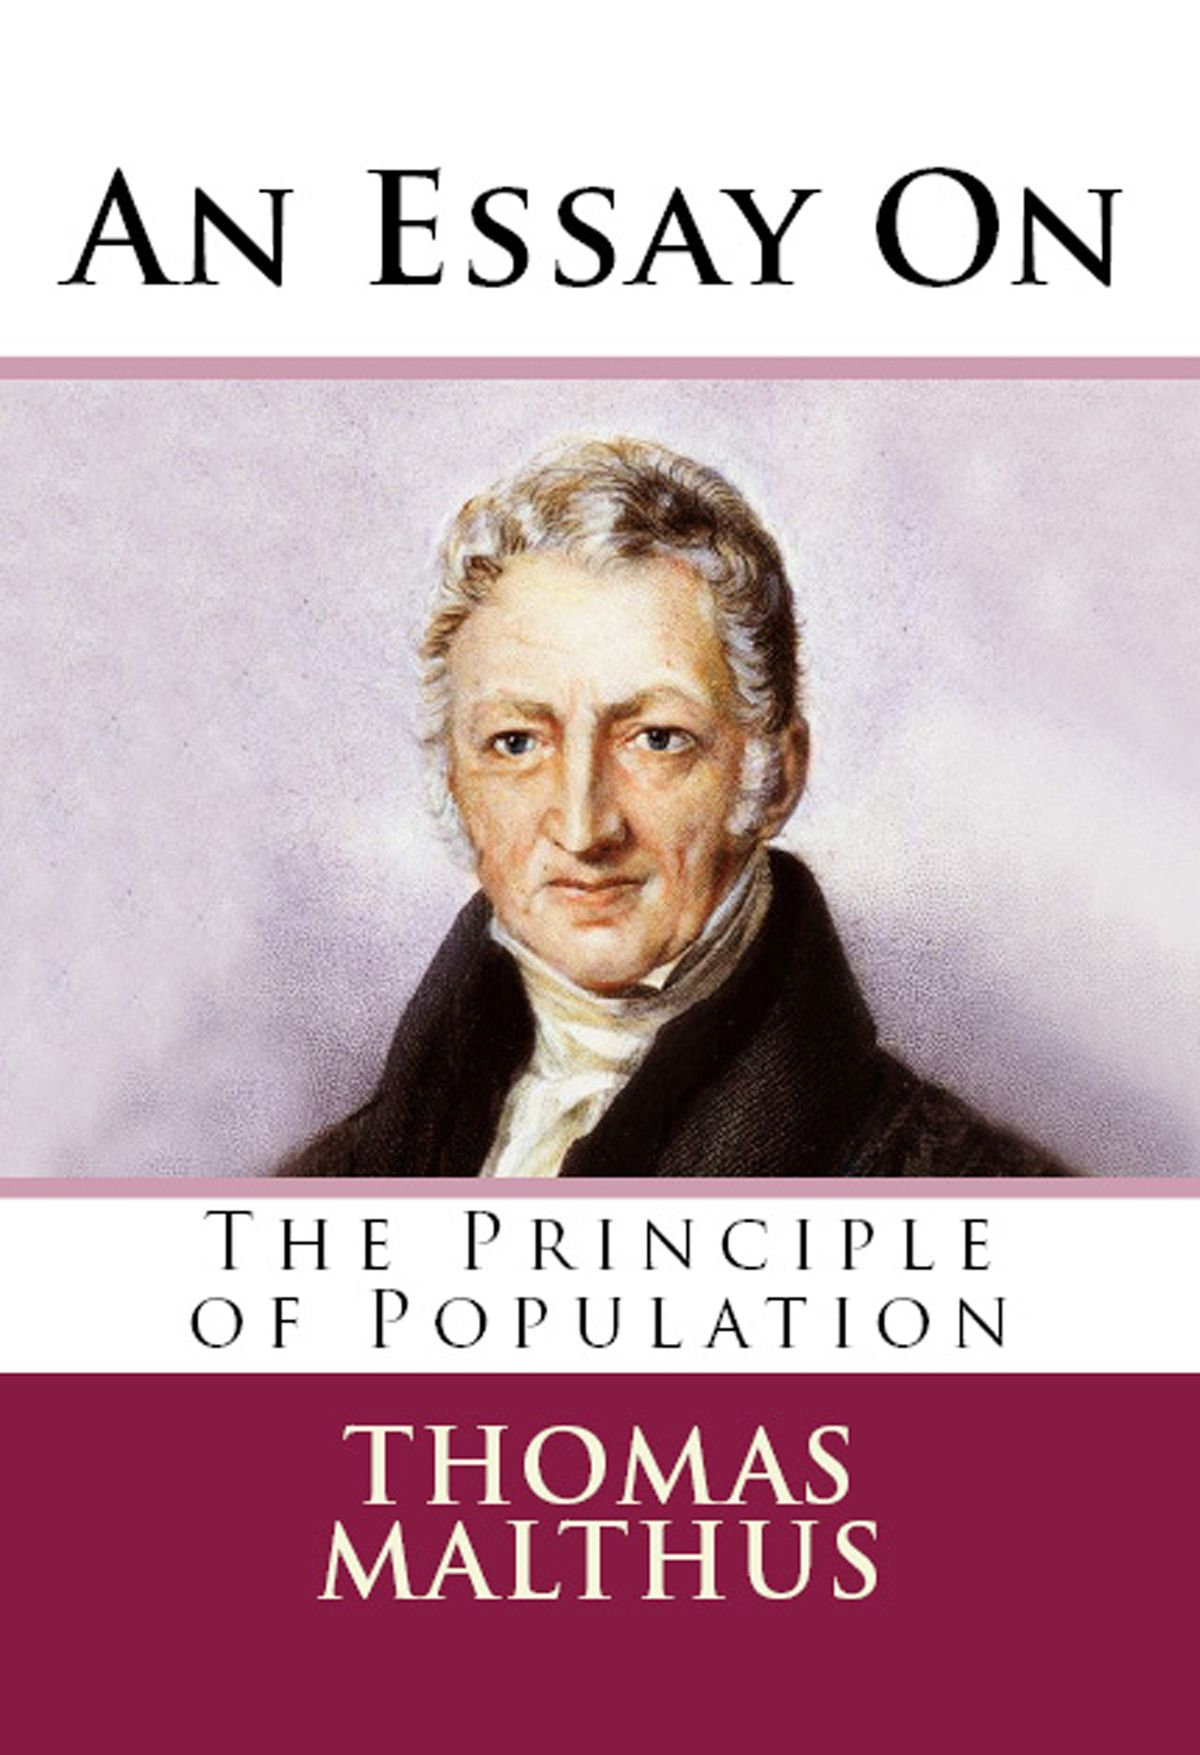 010 Essay On The Principle Of Population An Singular Thomas Malthus Sparknotes Advocated Ap Euro Full